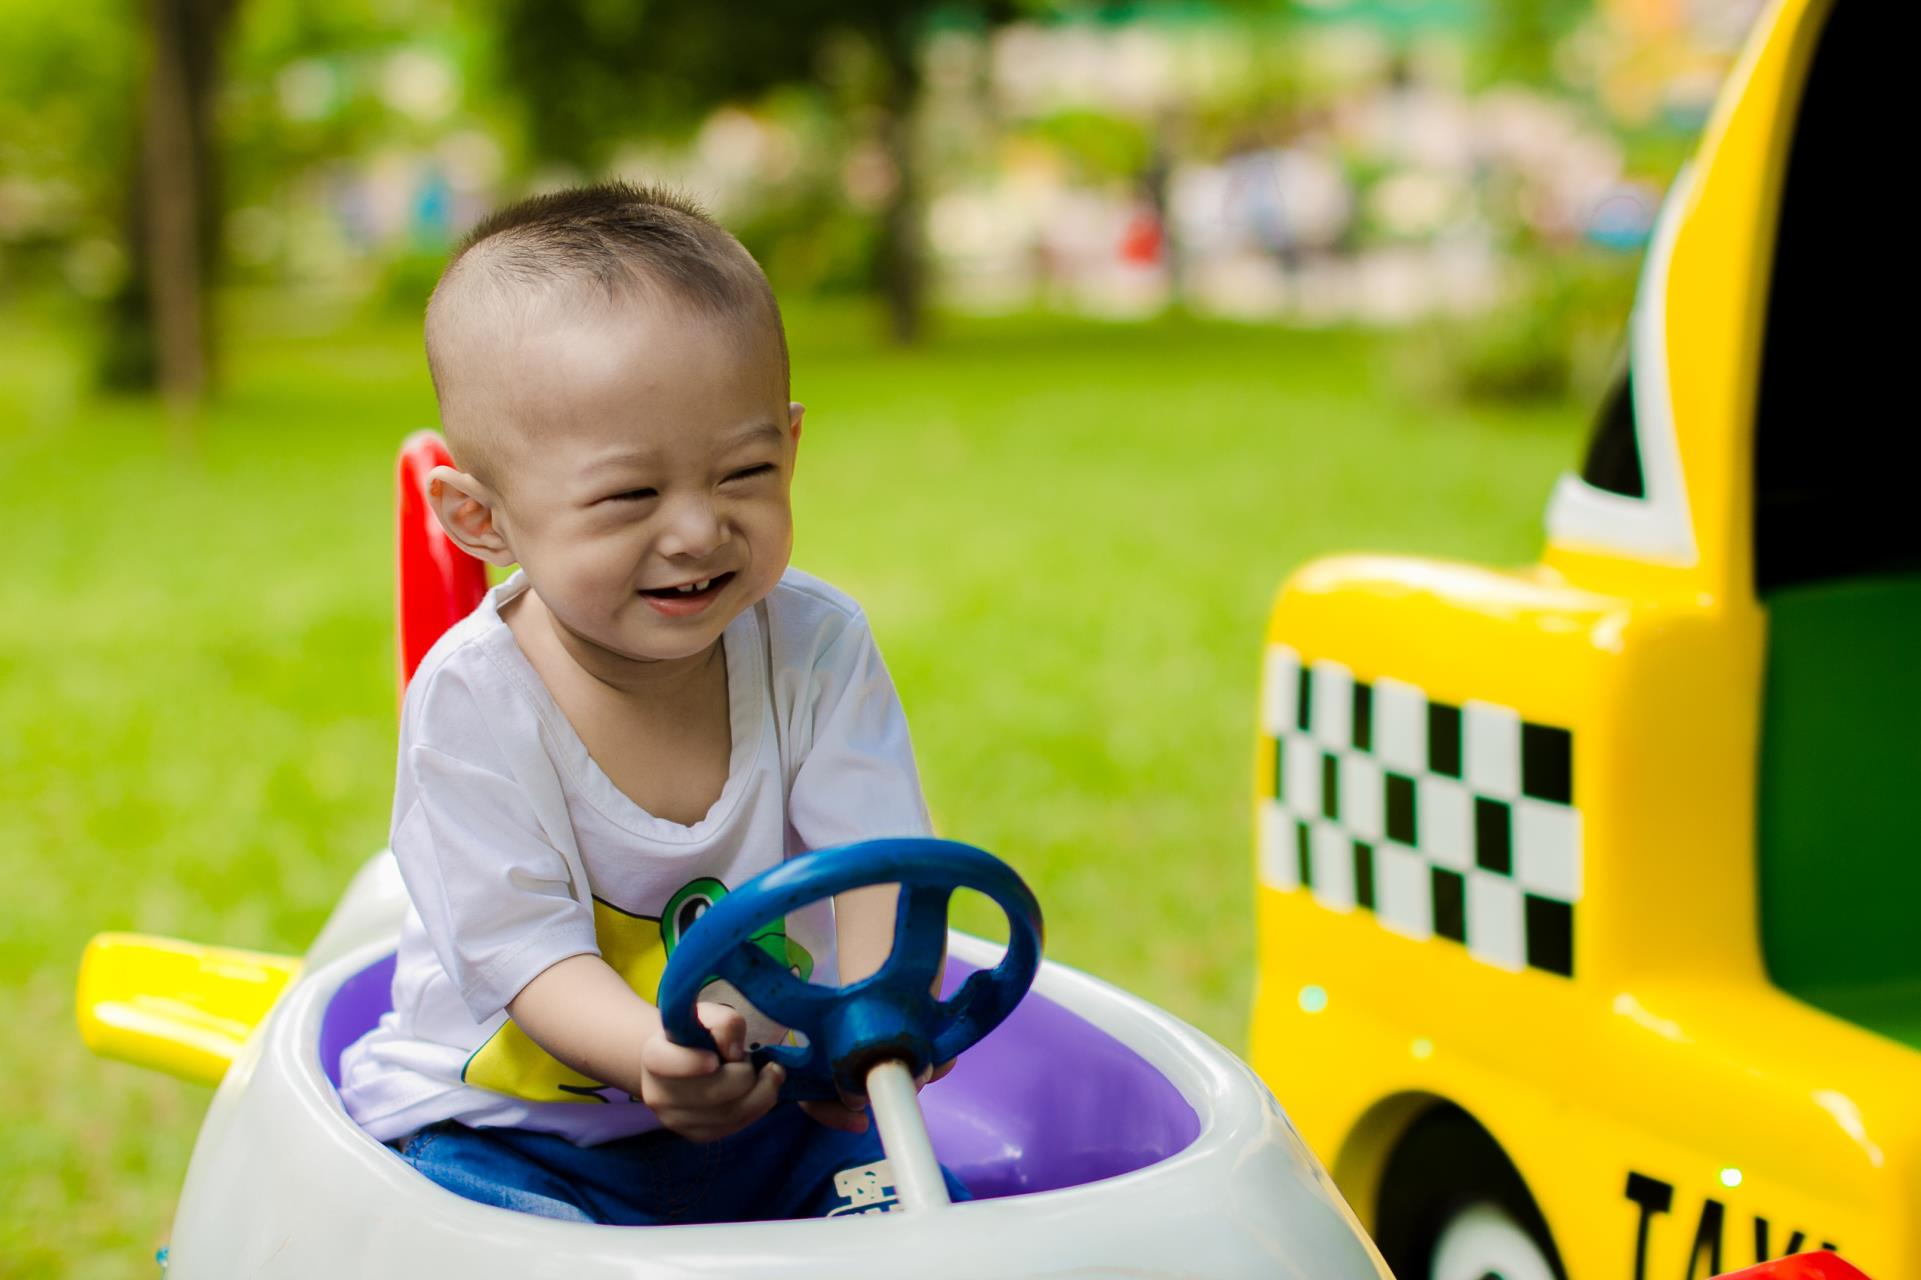 Canva - Boy Smiling While Riding Ride-on Toy